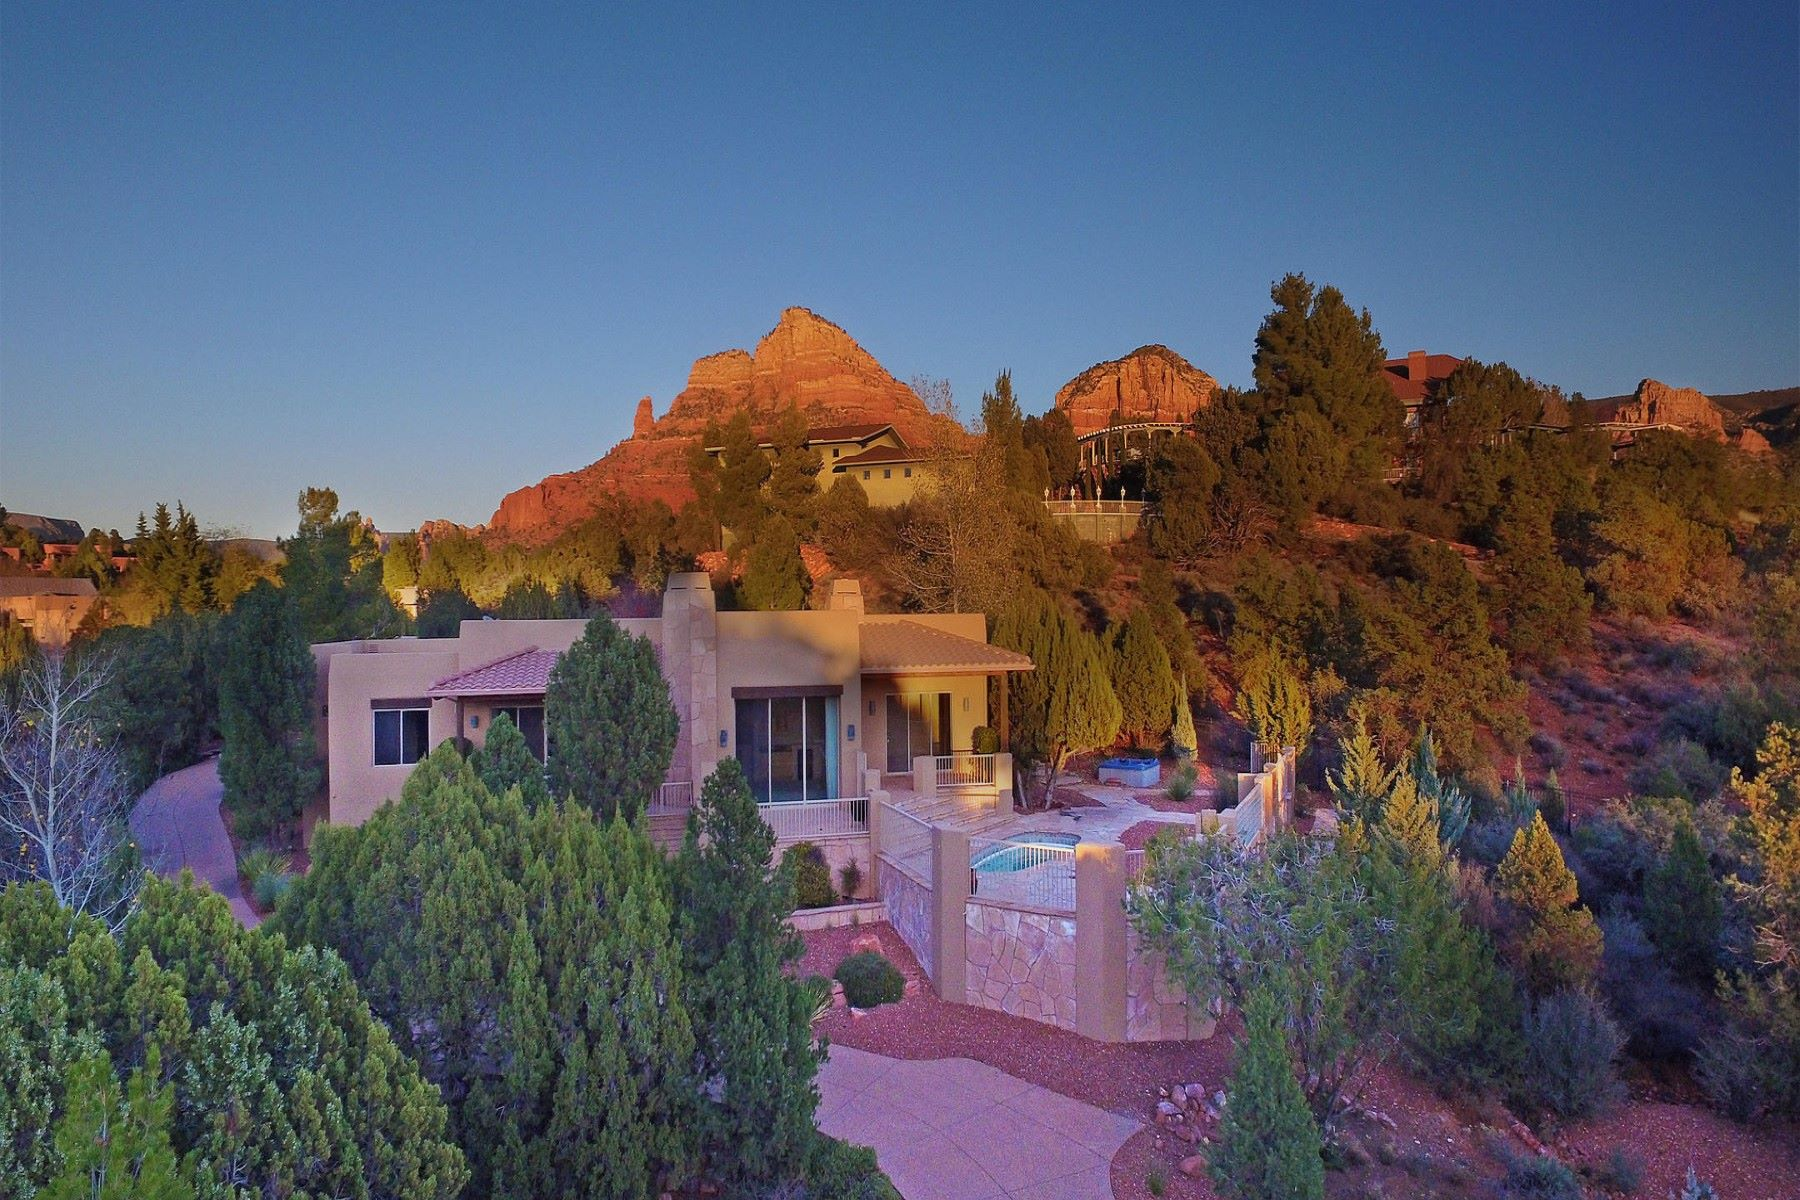 Single Family Home for Sale at Gorgeous Home with Captivating Views 45 Scenic Drive, Sedona, Arizona, 86336 United States